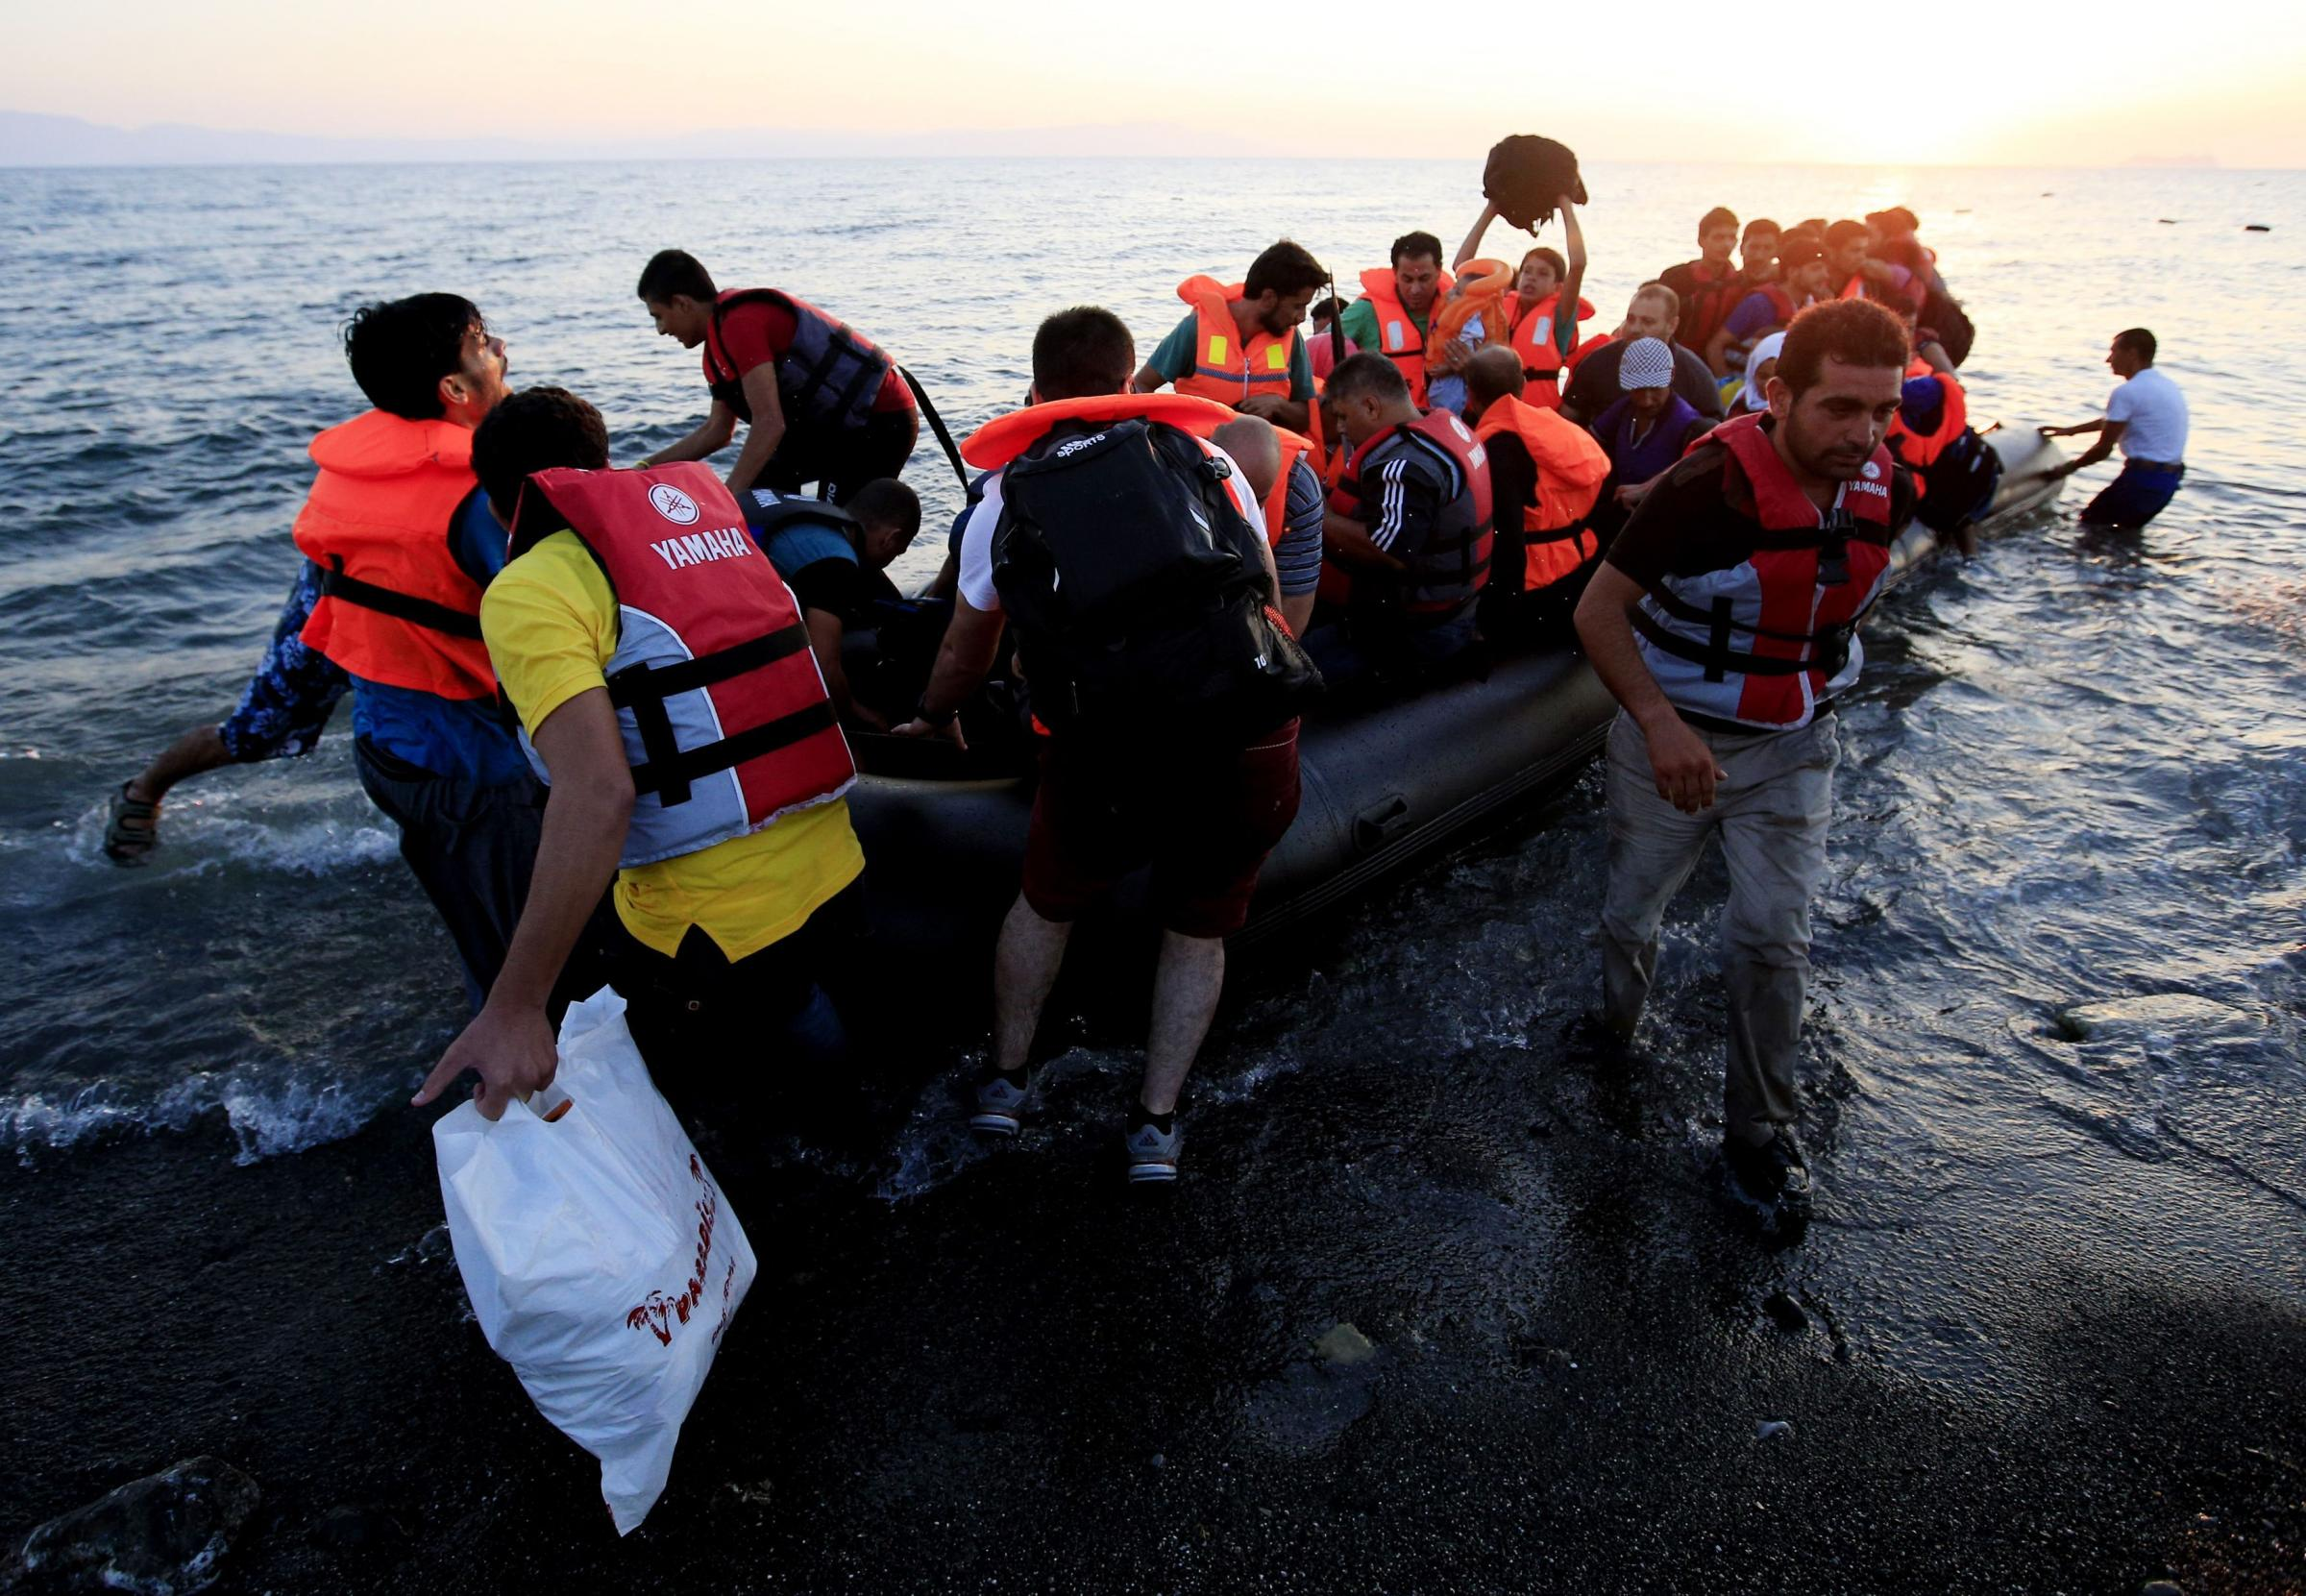 Migrants and refugees in a rubber dinghy arrive on the beach at Psalidi near Kos Town, Kos, Greece. PRESS ASSOCIATION Photo. Picture date: Friday August 21, 2015. See PA story POLITICS Kos. Photo credit should read: Jonathan Brady/PA Wire. (37486776)